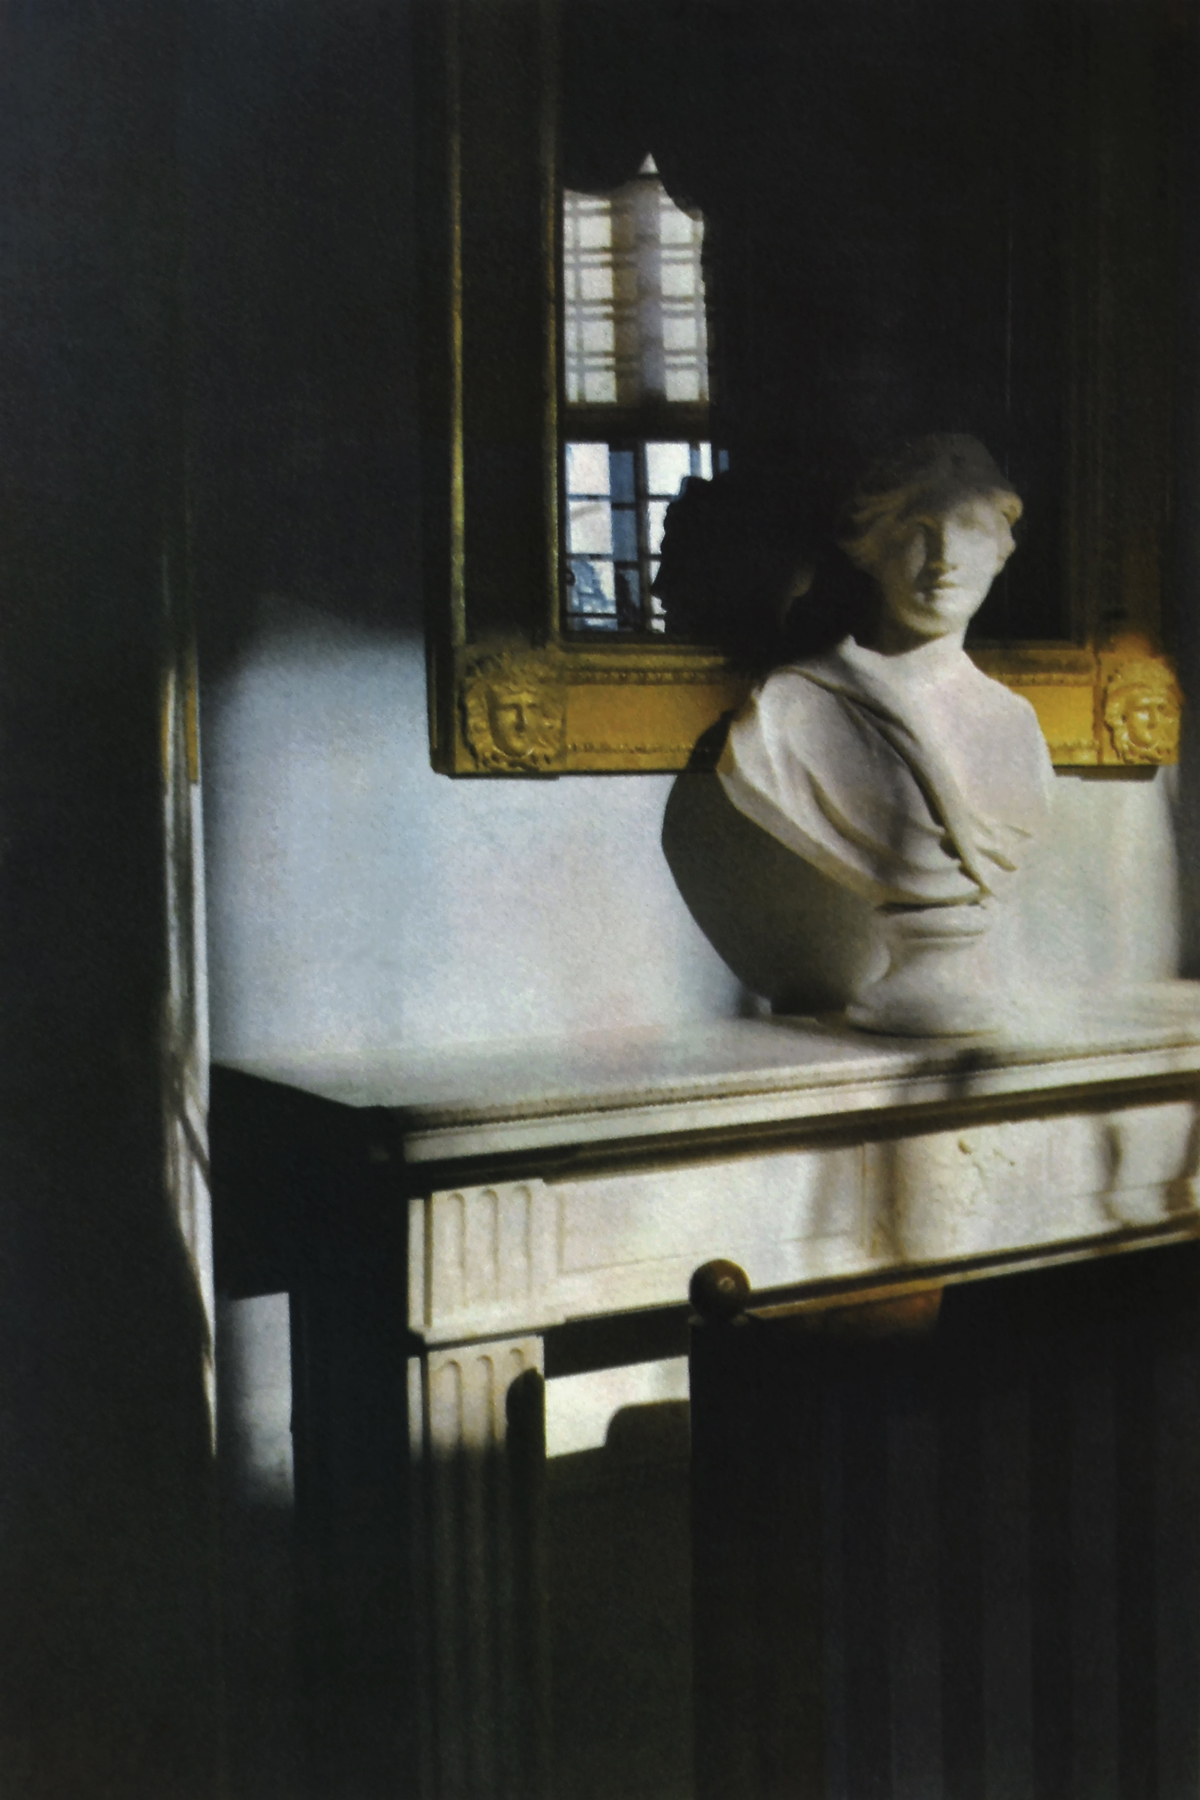 Maria_Vinogradova_Alone in a Palace_Museum-Attendant's Daydream at Sunset_5.jpg